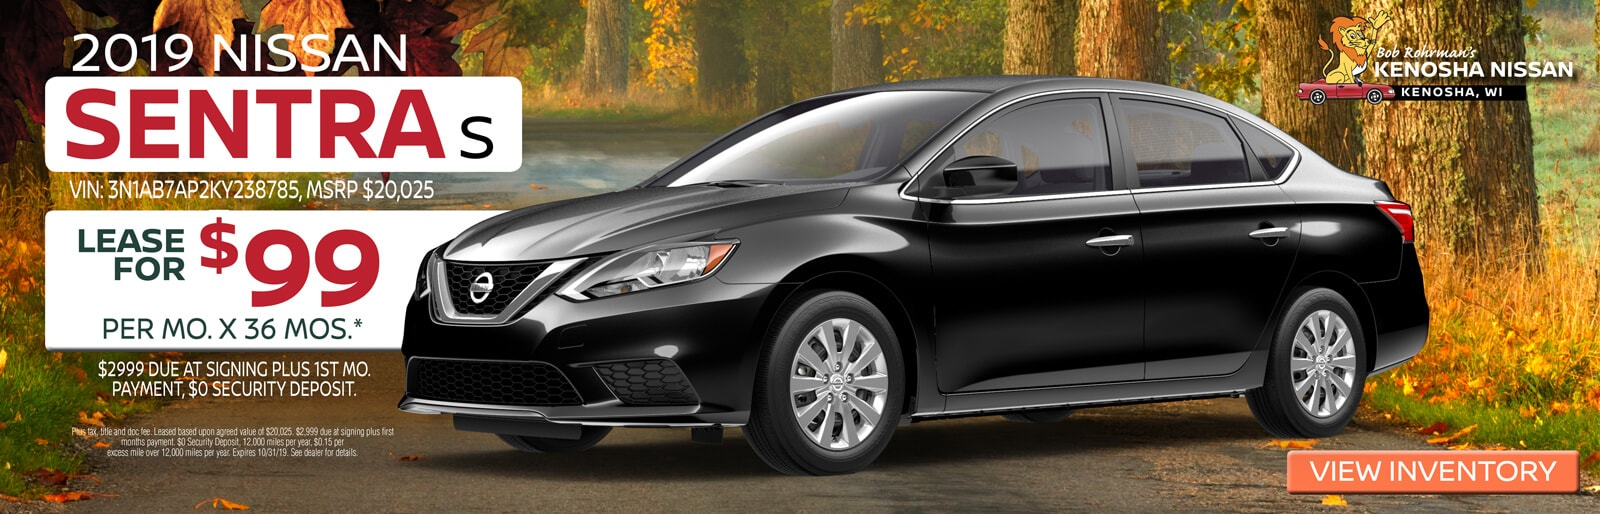 Lease a 2019 Nissan Sentra S for $99/mo. for 36mos.